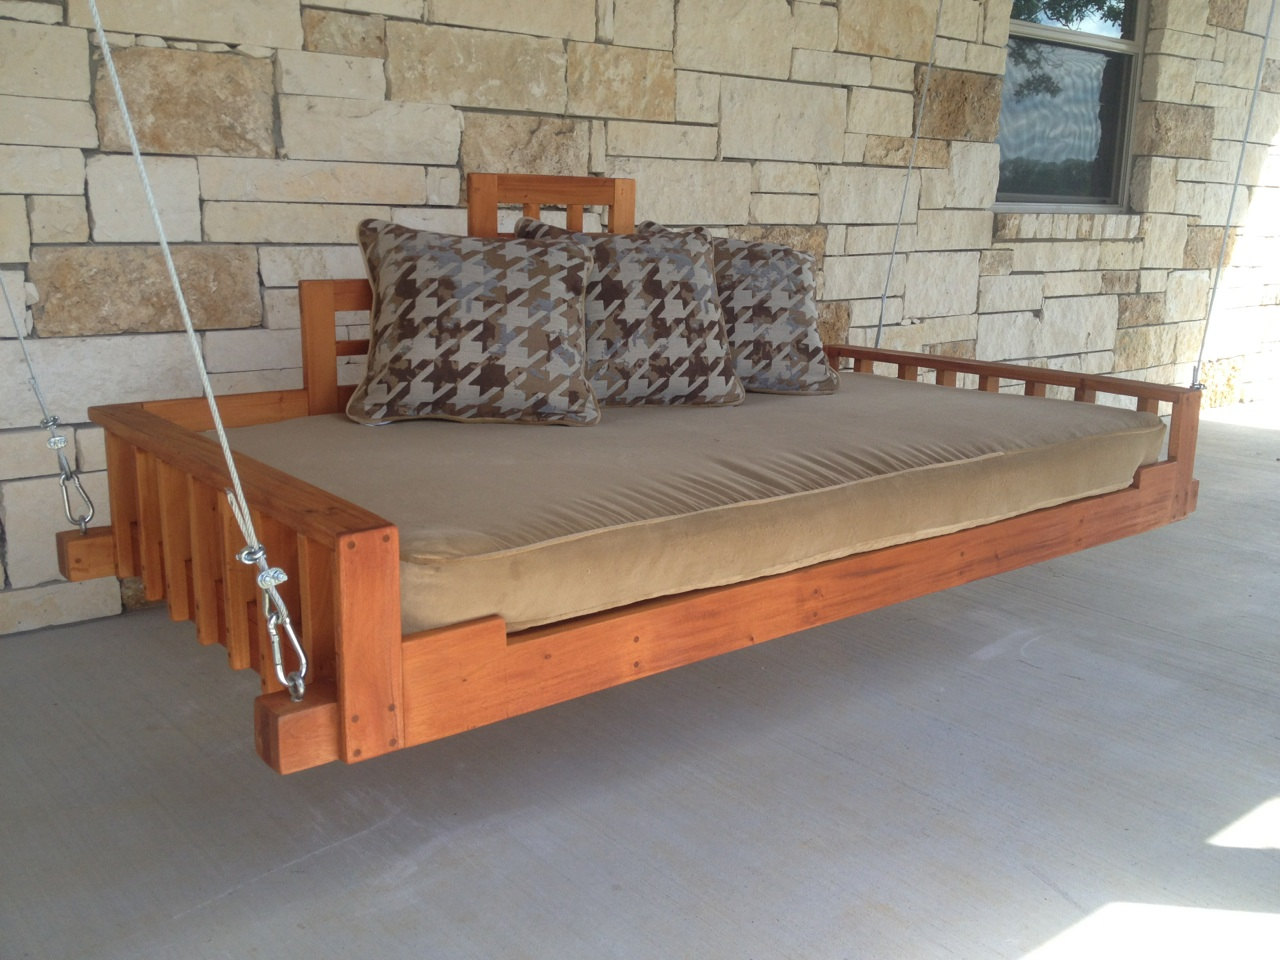 il fullxfull669187626 mmy0 original - Porch Swing Bed